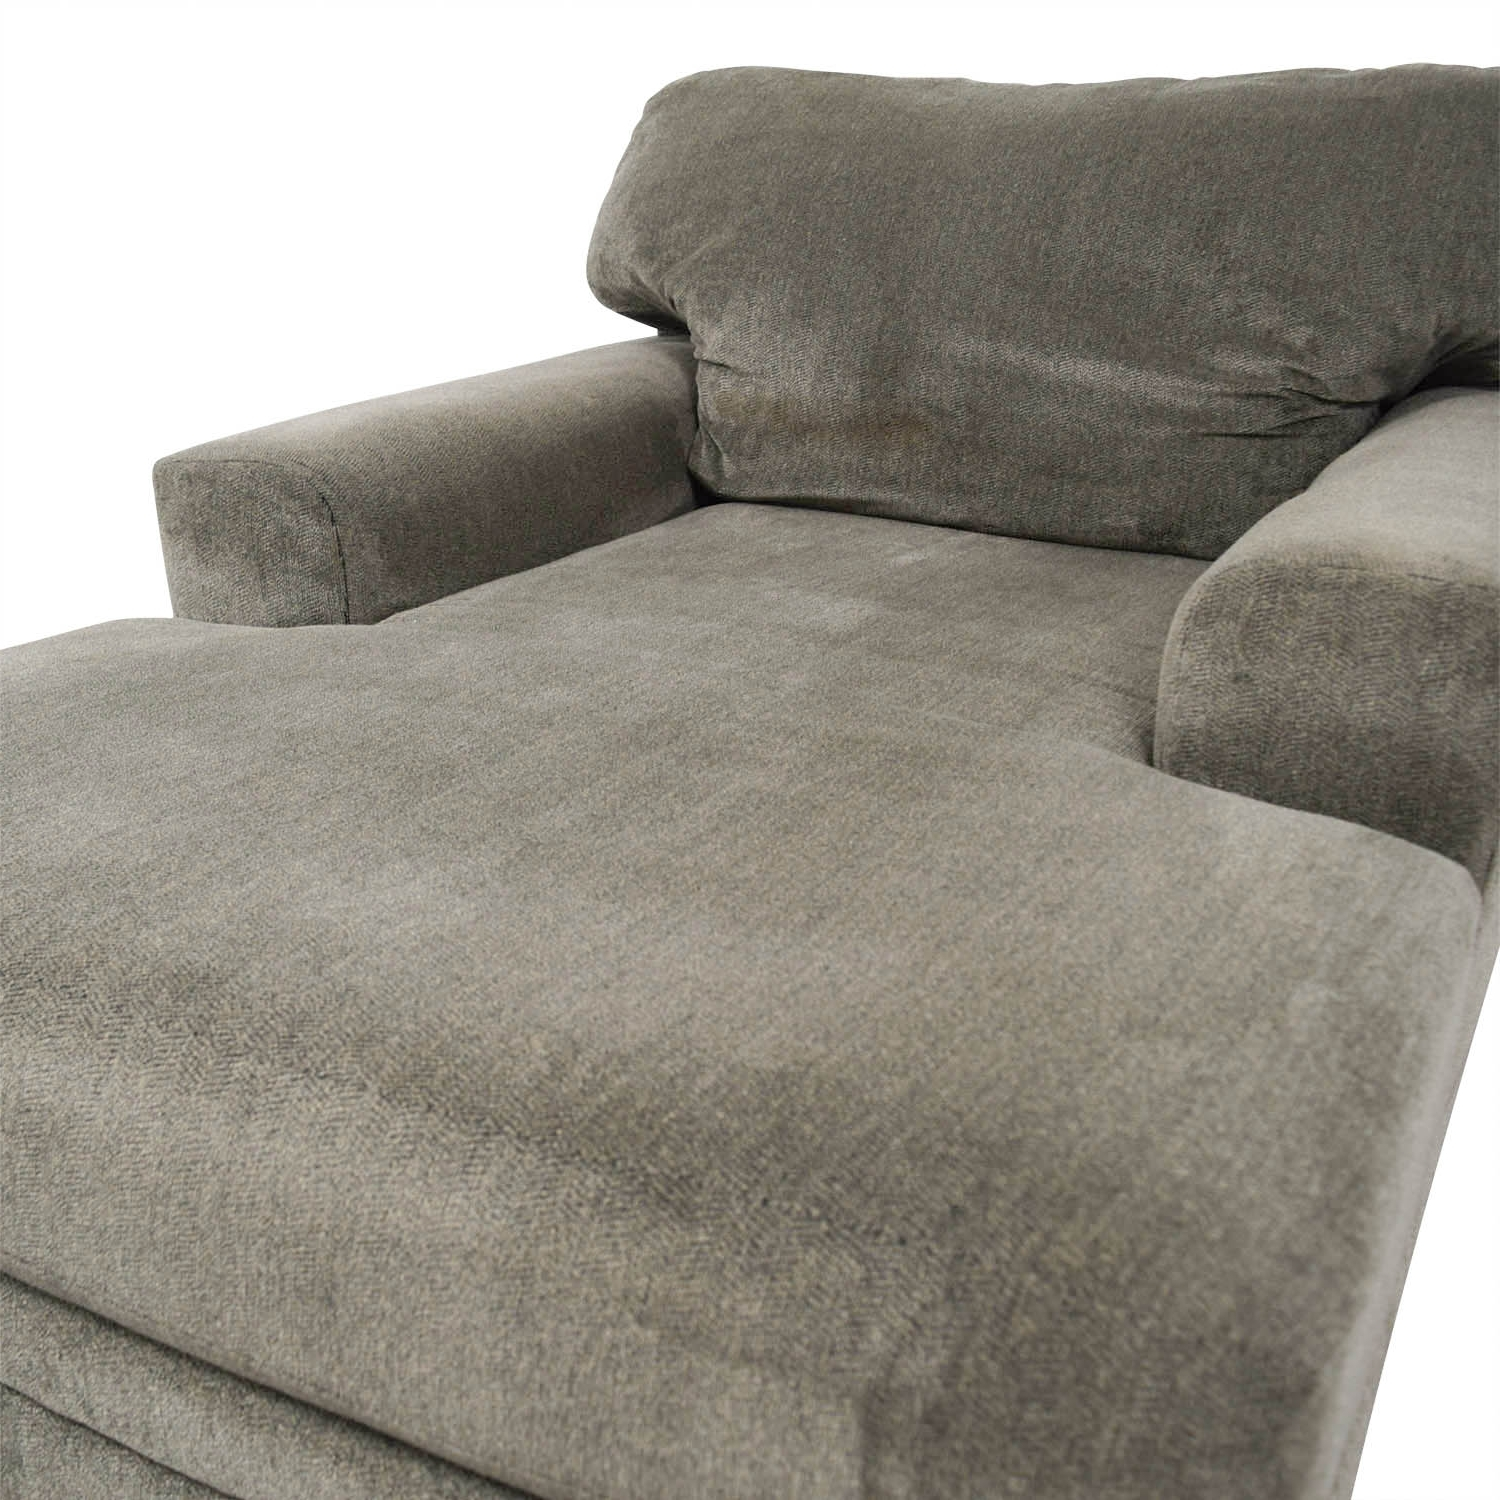 [%81% Off – Bob's Furniture Bob's Furniture Grey Chaise Lounge / Sofas Throughout Trendy Bobs Furniture Chaises|Bobs Furniture Chaises For Most Recent 81% Off – Bob's Furniture Bob's Furniture Grey Chaise Lounge / Sofas|Famous Bobs Furniture Chaises Within 81% Off – Bob's Furniture Bob's Furniture Grey Chaise Lounge / Sofas|Current 81% Off – Bob's Furniture Bob's Furniture Grey Chaise Lounge / Sofas In Bobs Furniture Chaises%] (View 11 of 15)